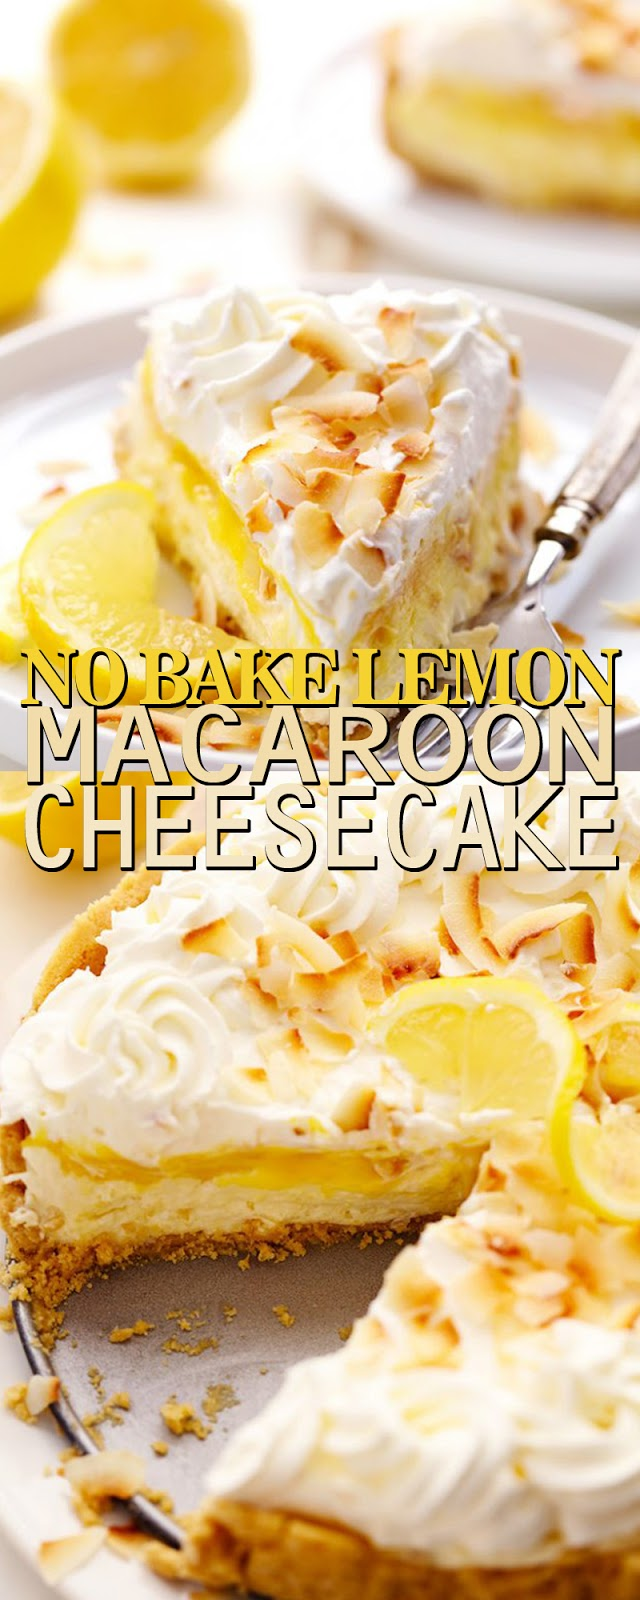 NO BAKE LEMON MACAROON CHEESECAKE